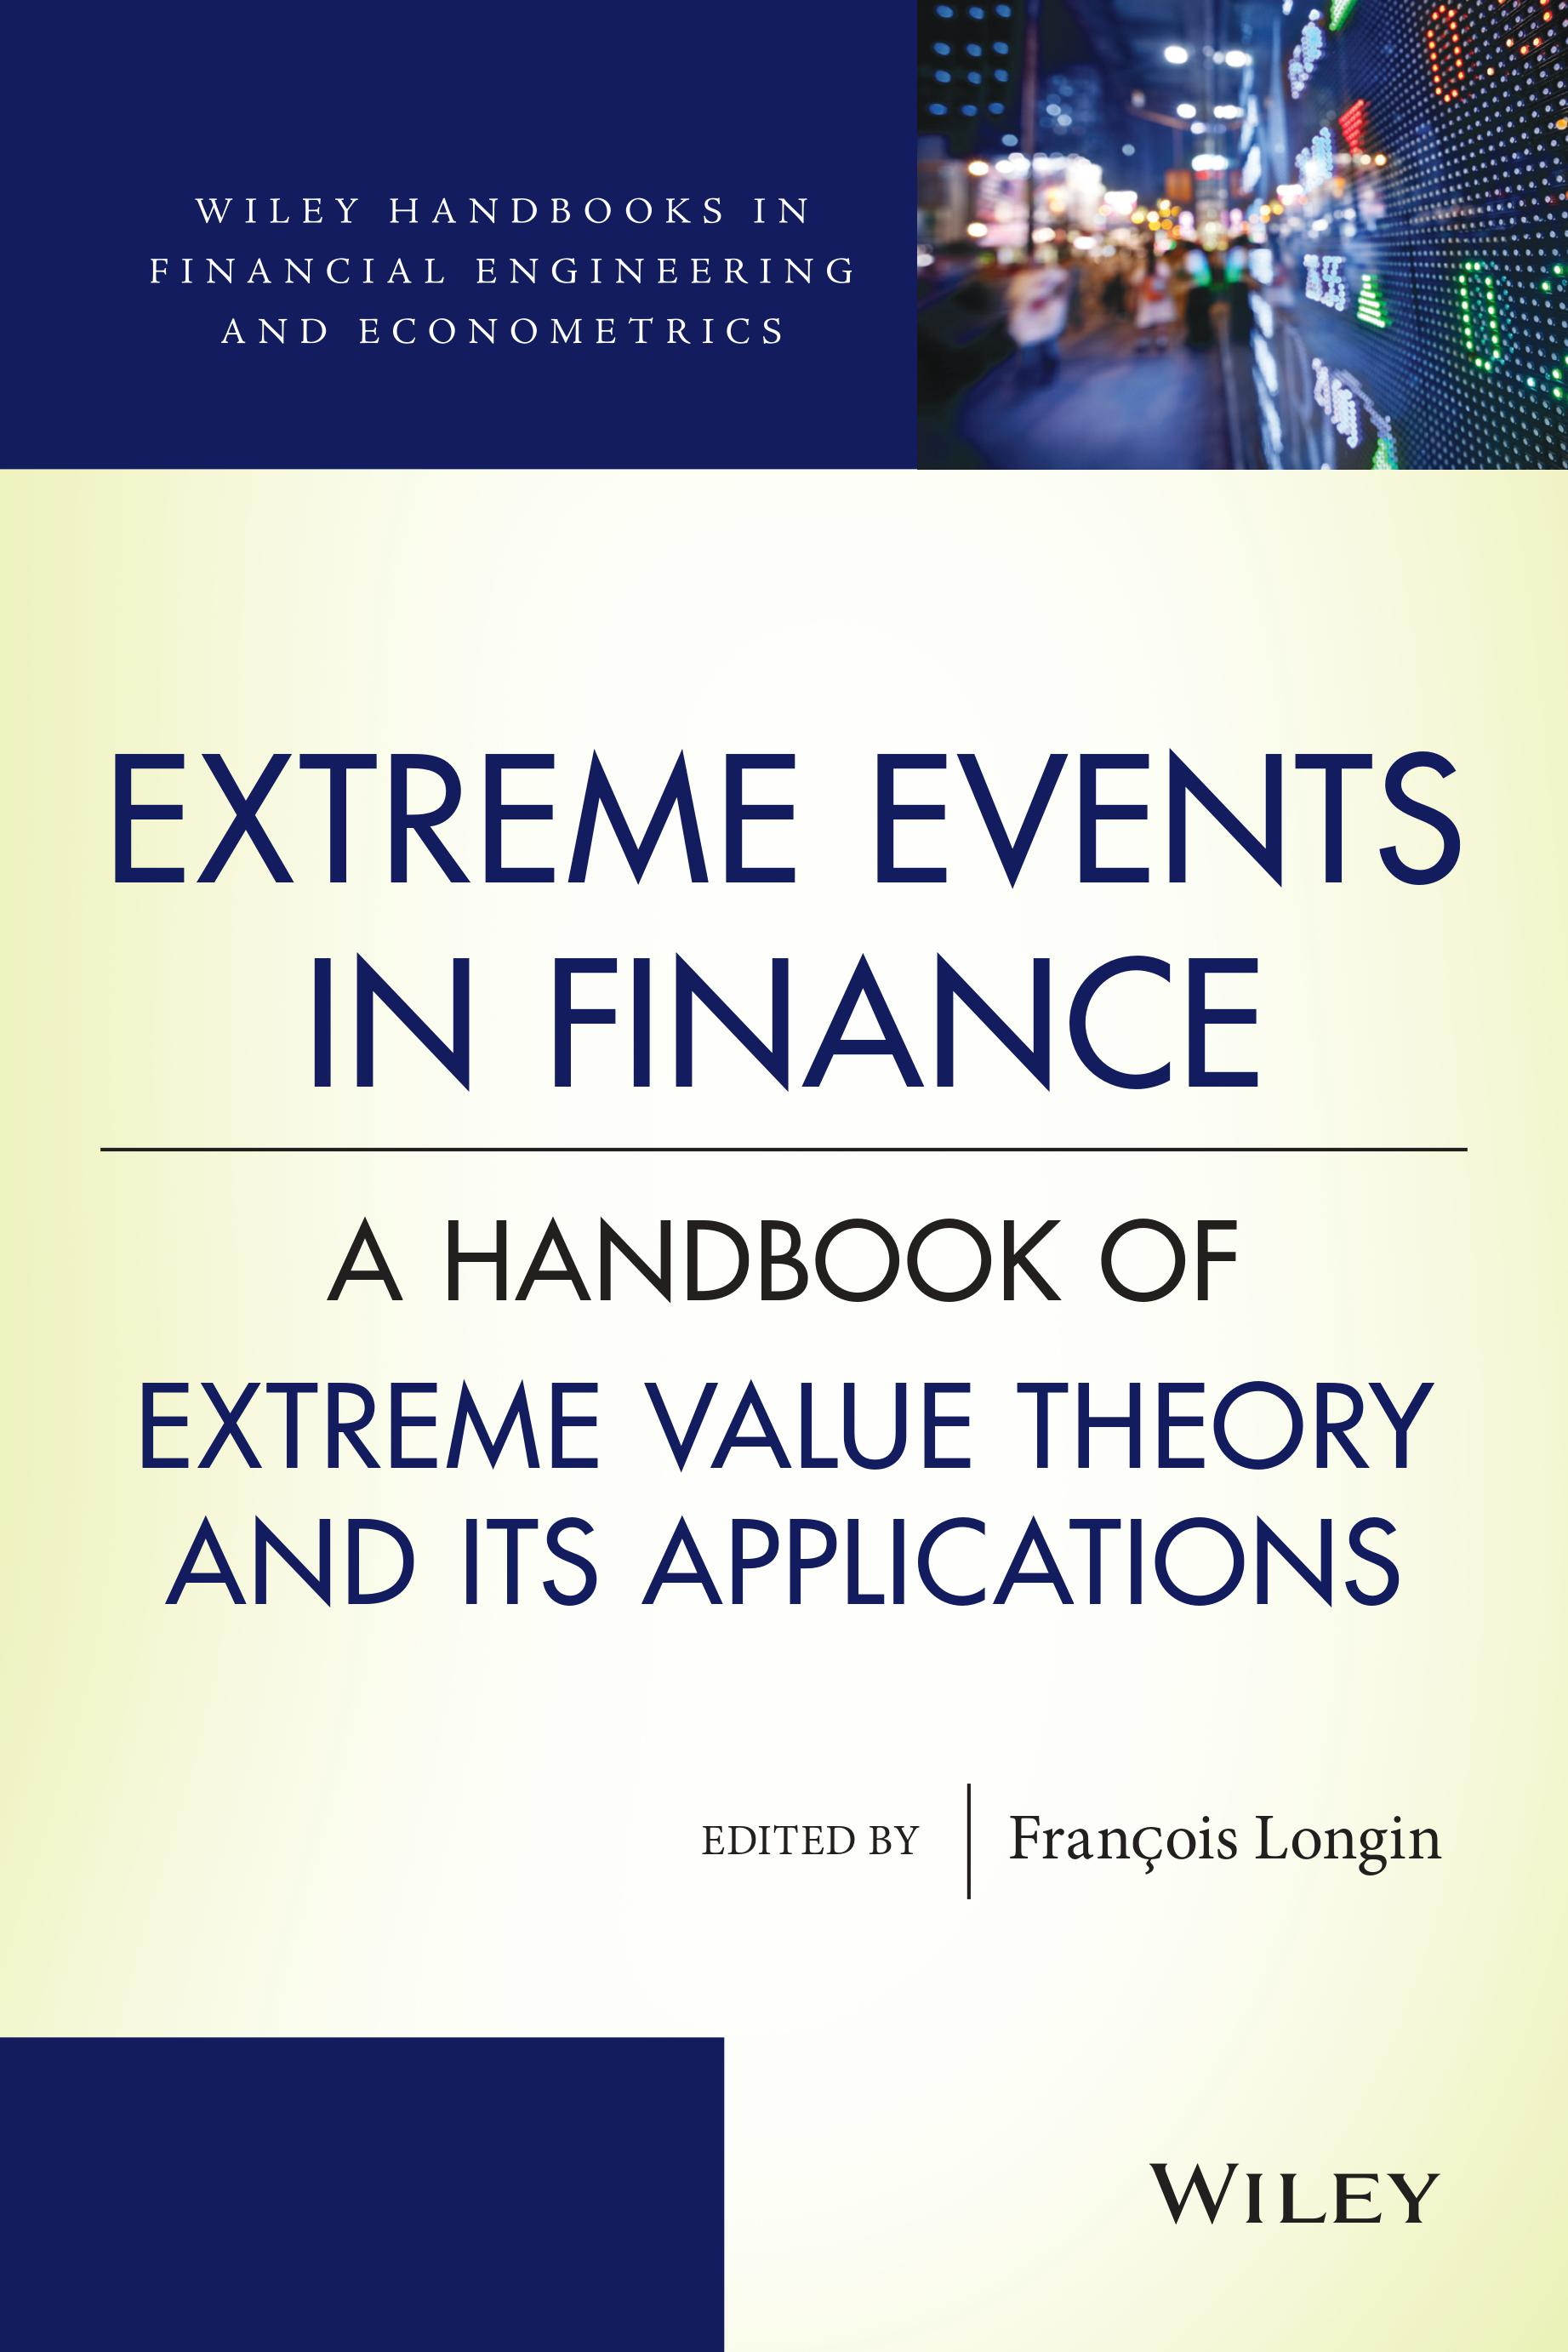 Multidisciplinary research at ESSEC - Wiley handbook Extreme events in finance